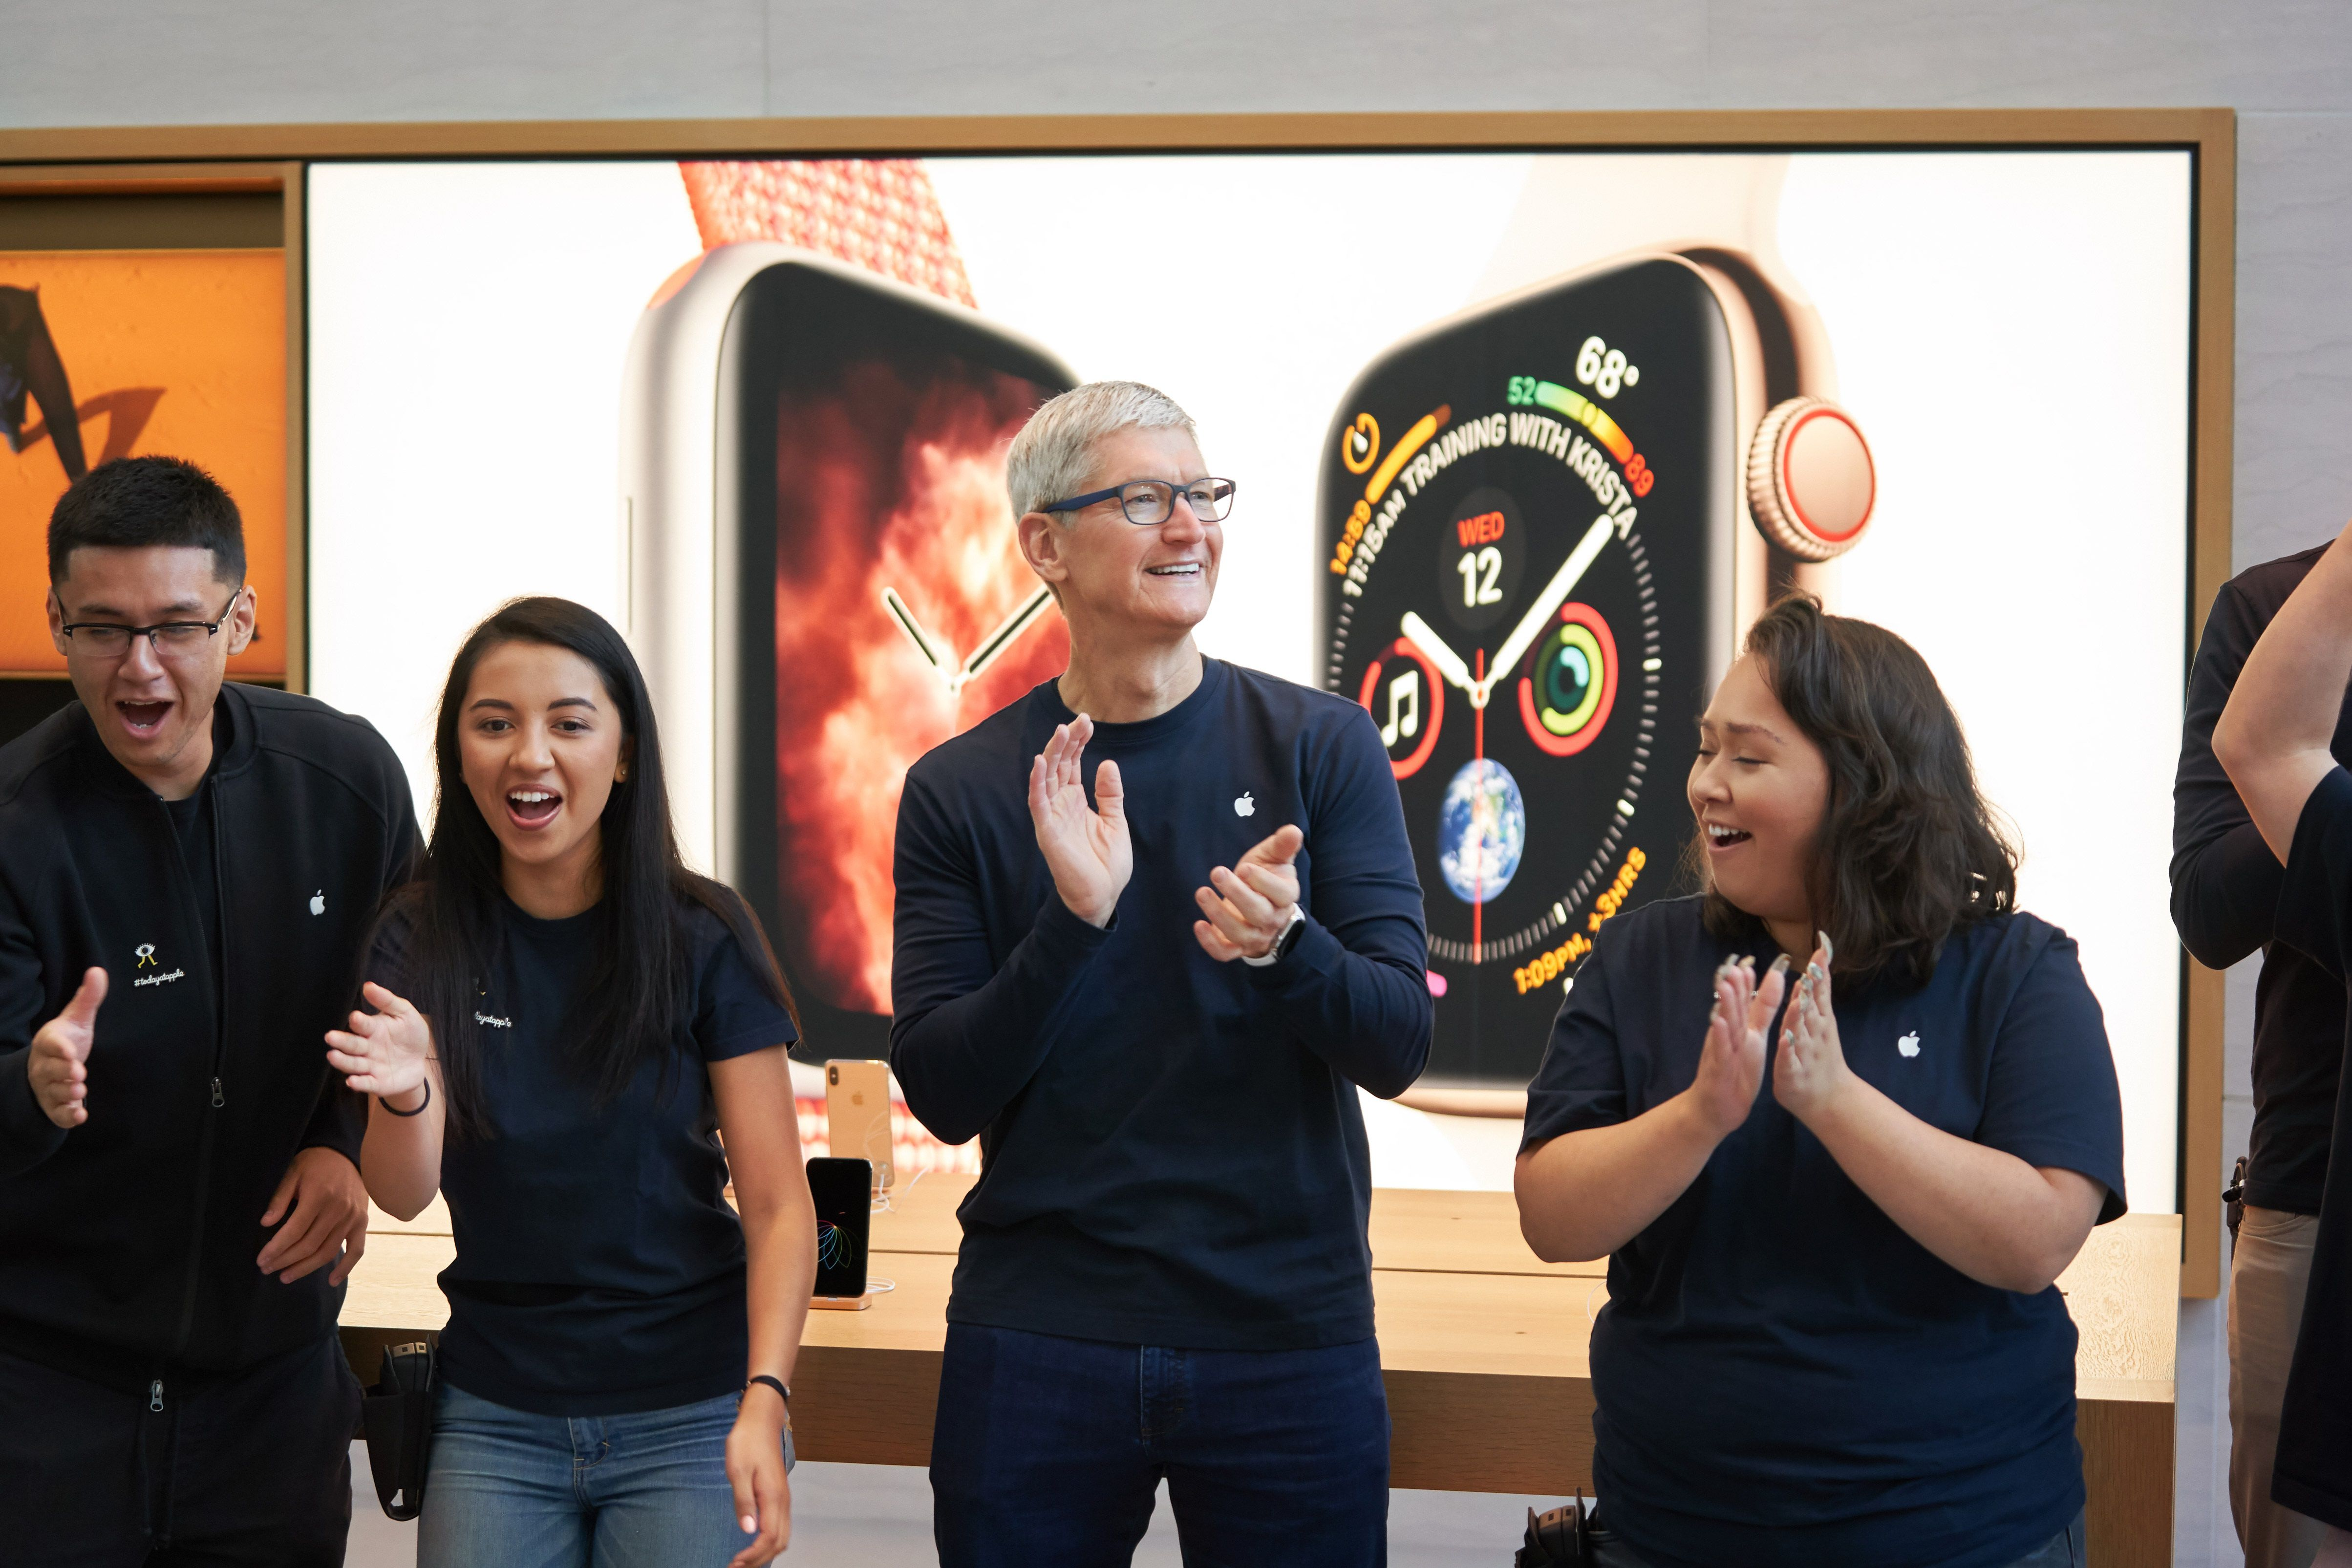 Tim Cook in an Apple Store with Apple employees